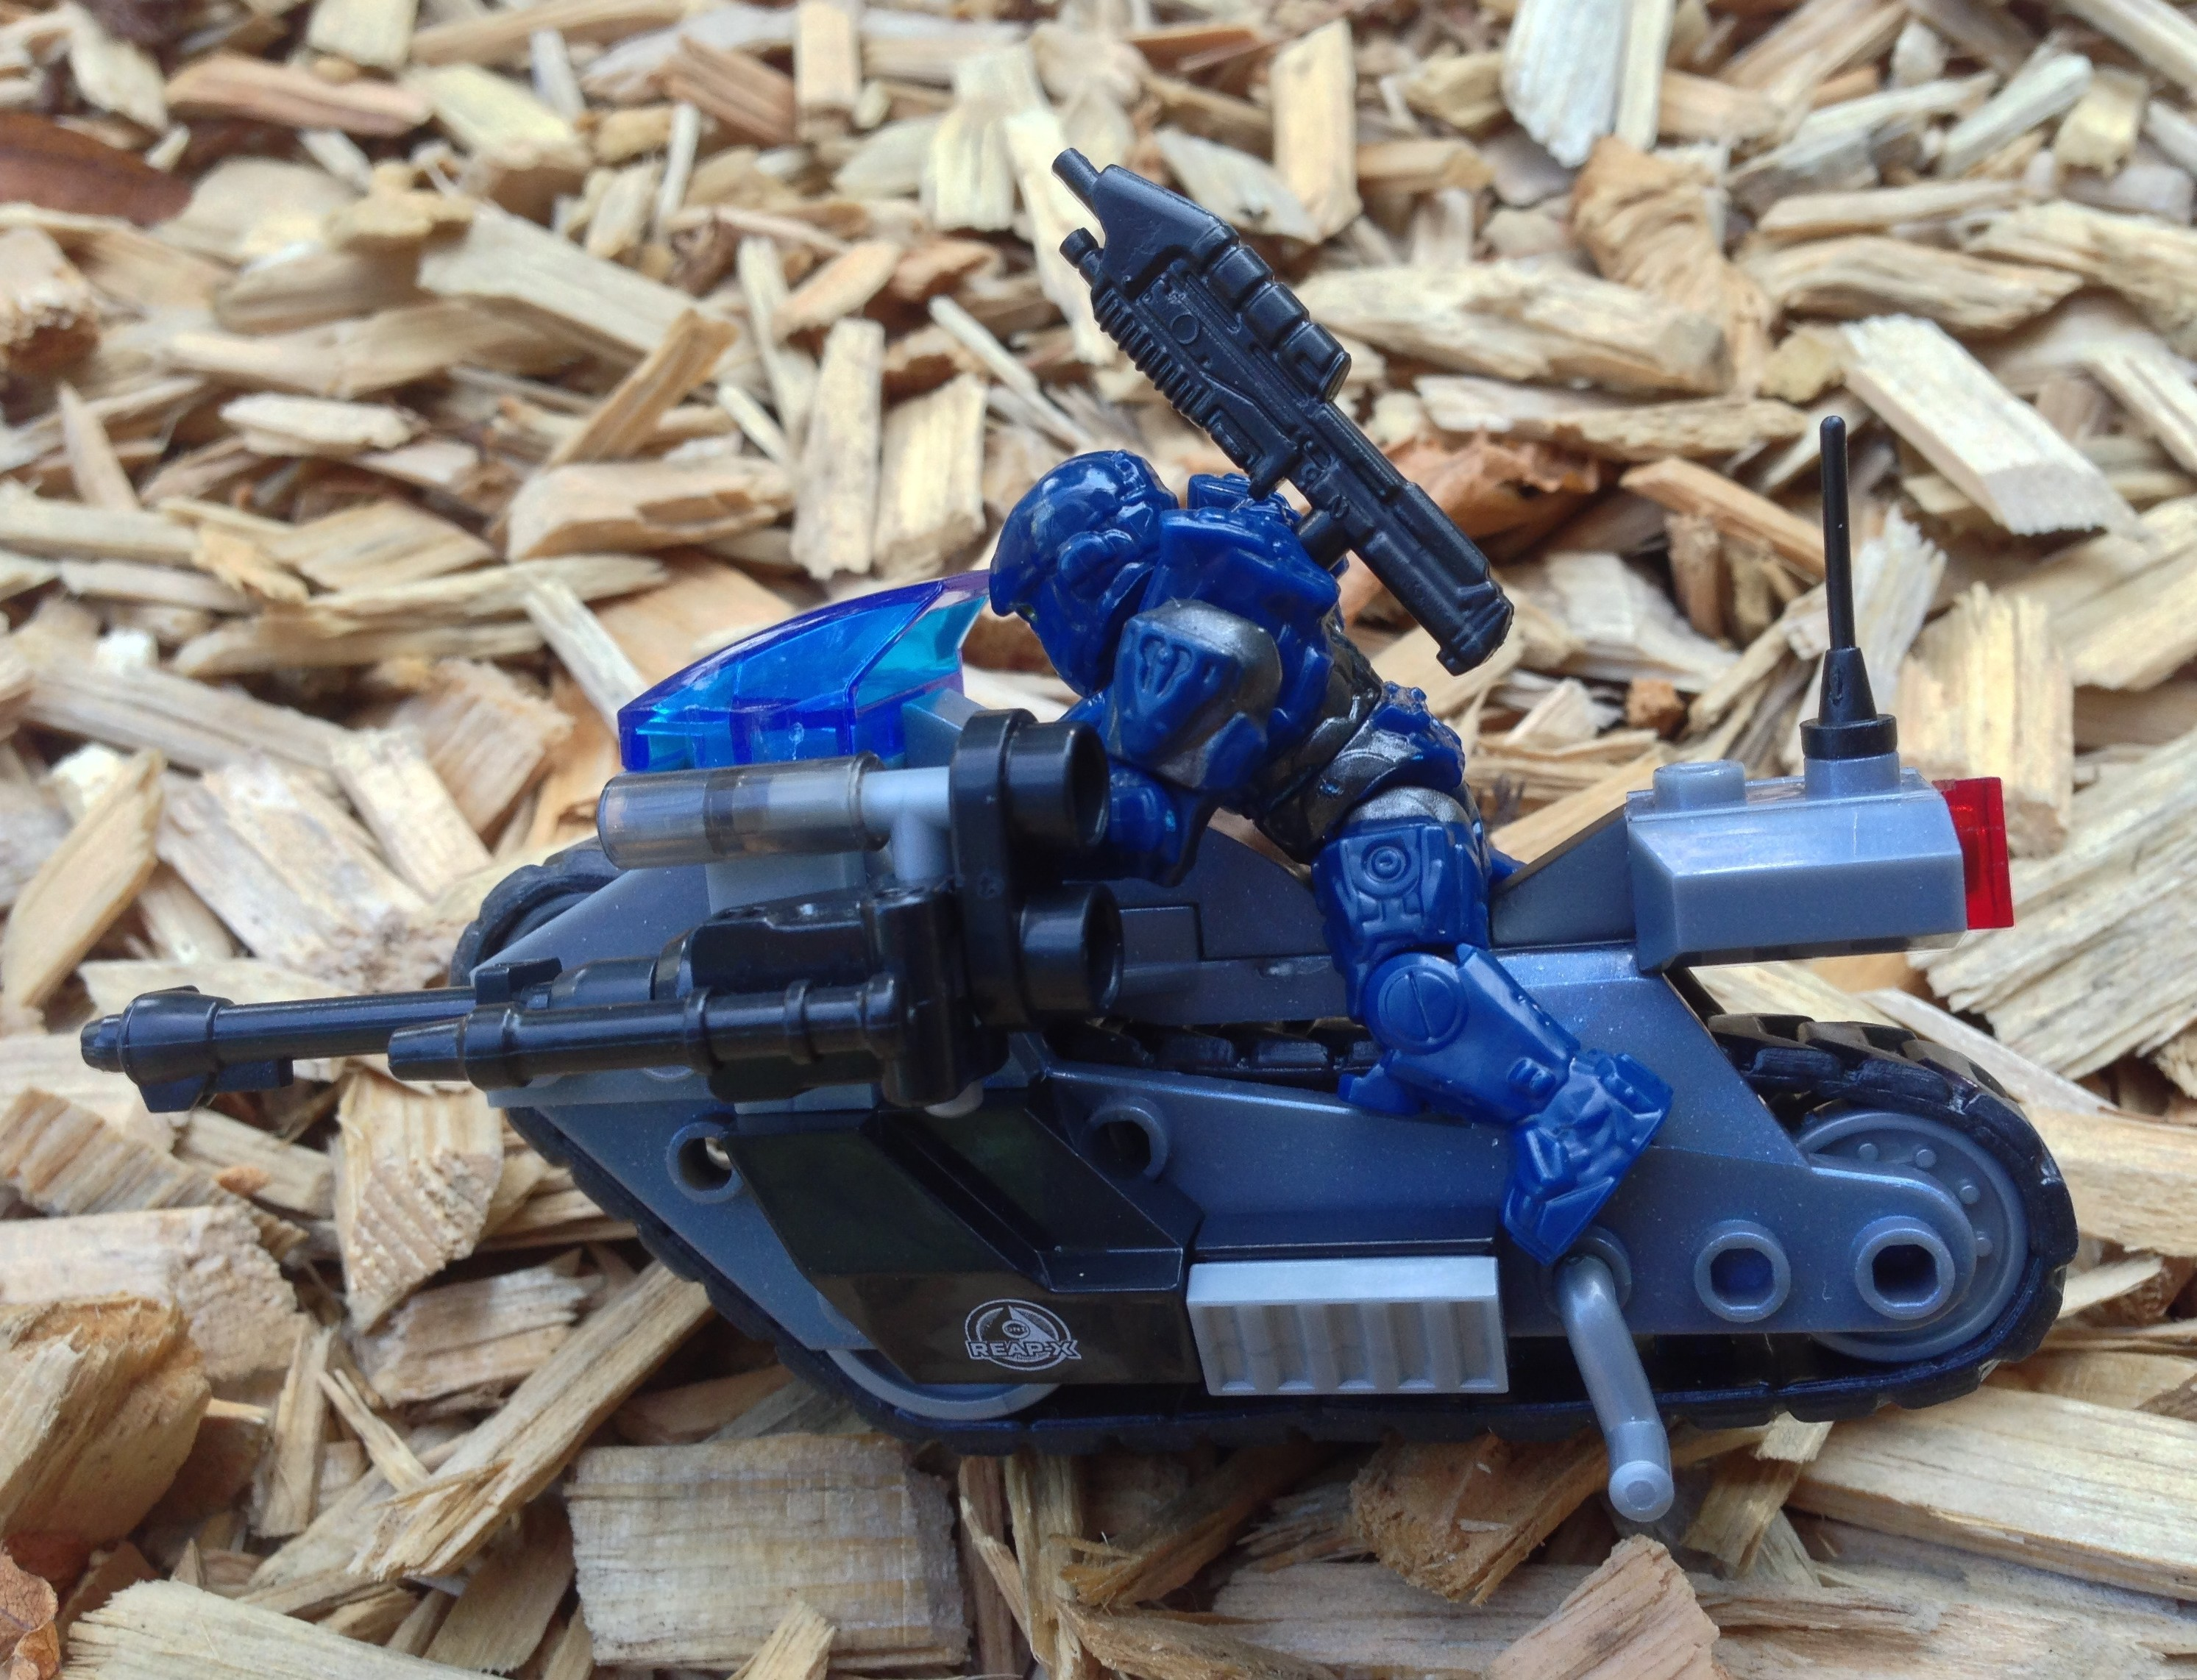 Halo Mega Bloks Unsc Siege Bike Review 97116 Oni Reap X Halo Toy